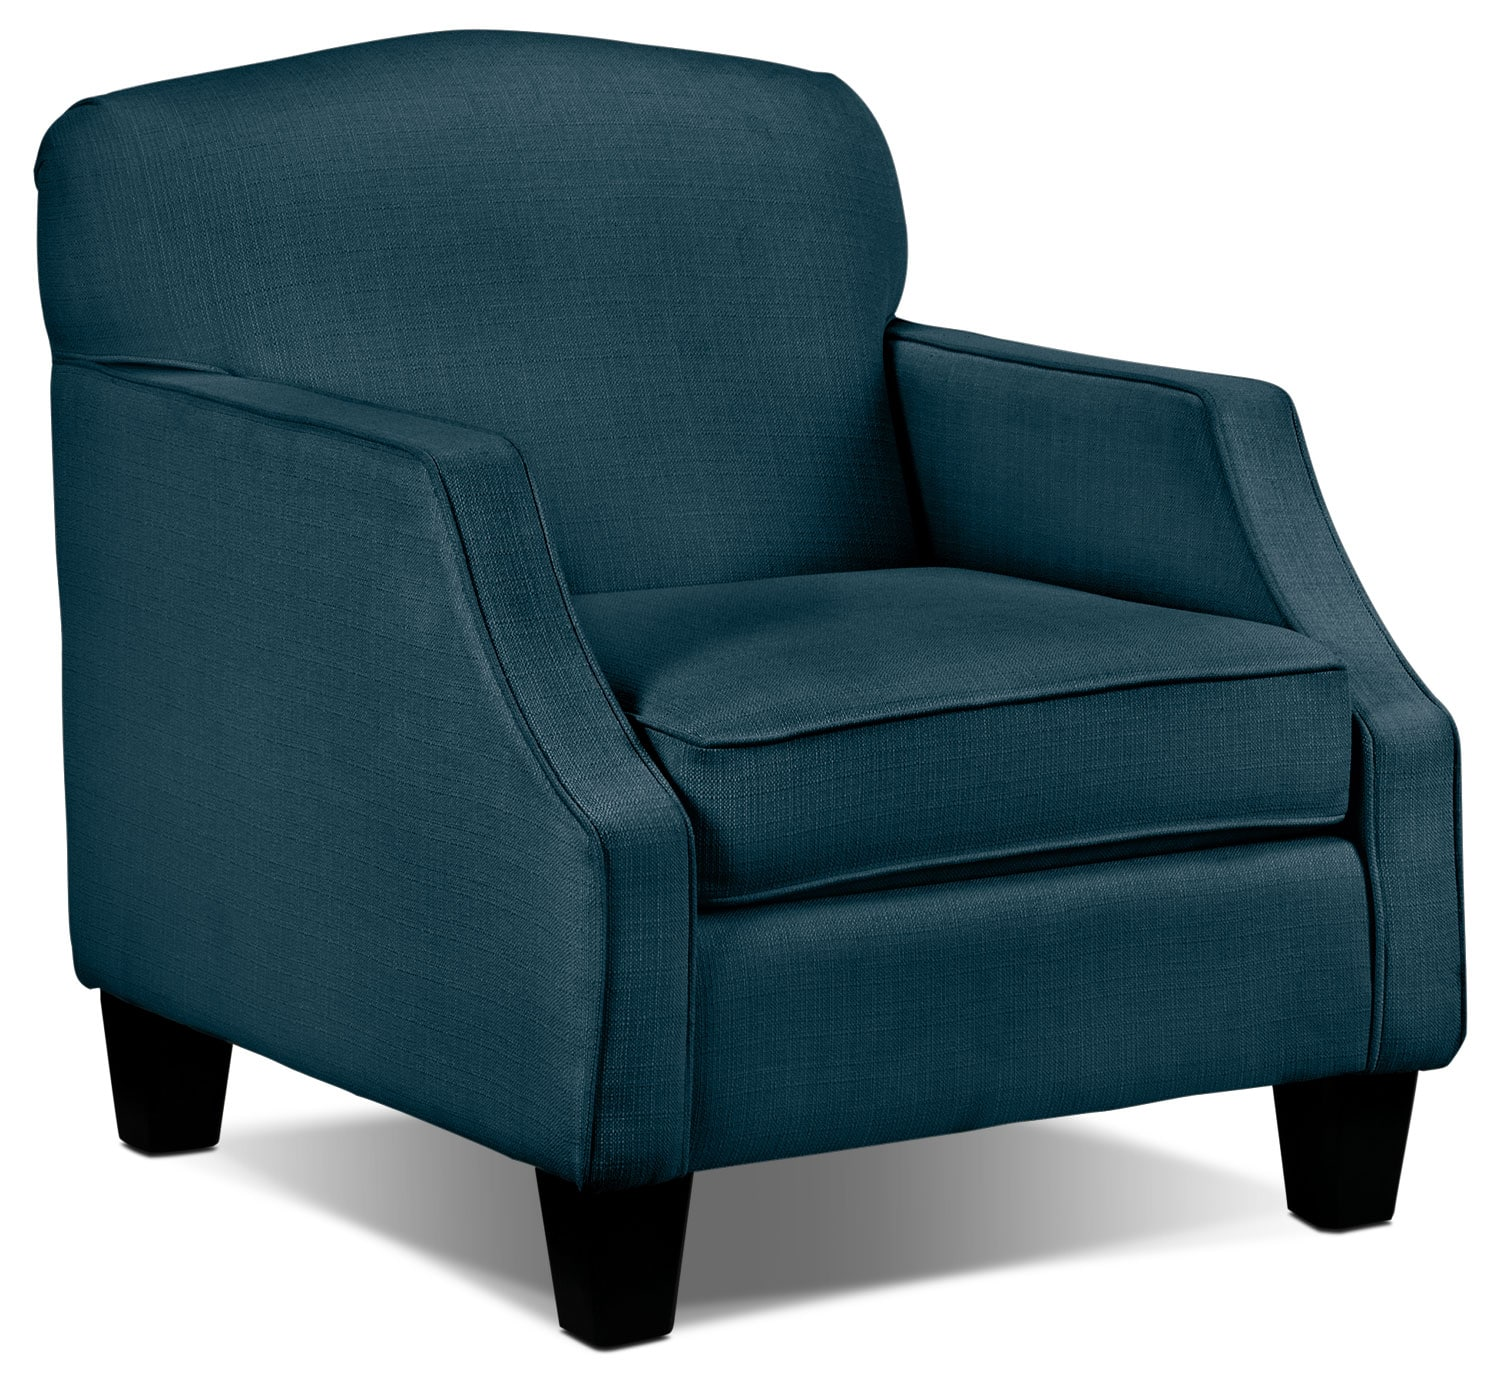 Living Room Furniture - Klein Chair - Azure